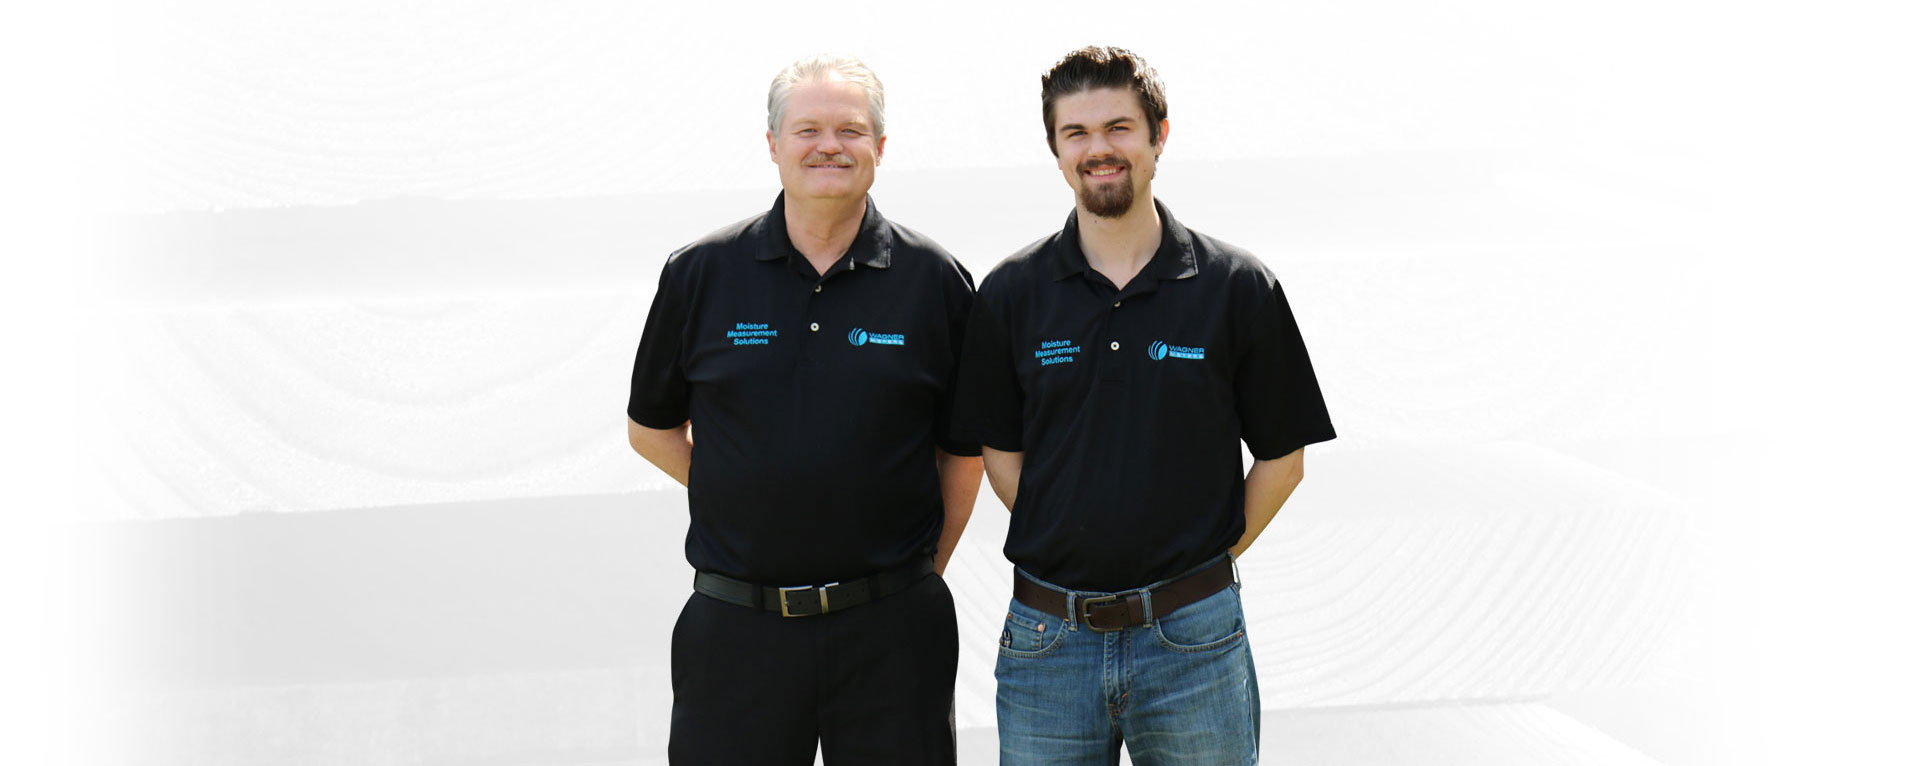 Ed Wagner President and CEO standing with his son Eric Wagner. Wagner Meters is a family-owned company.